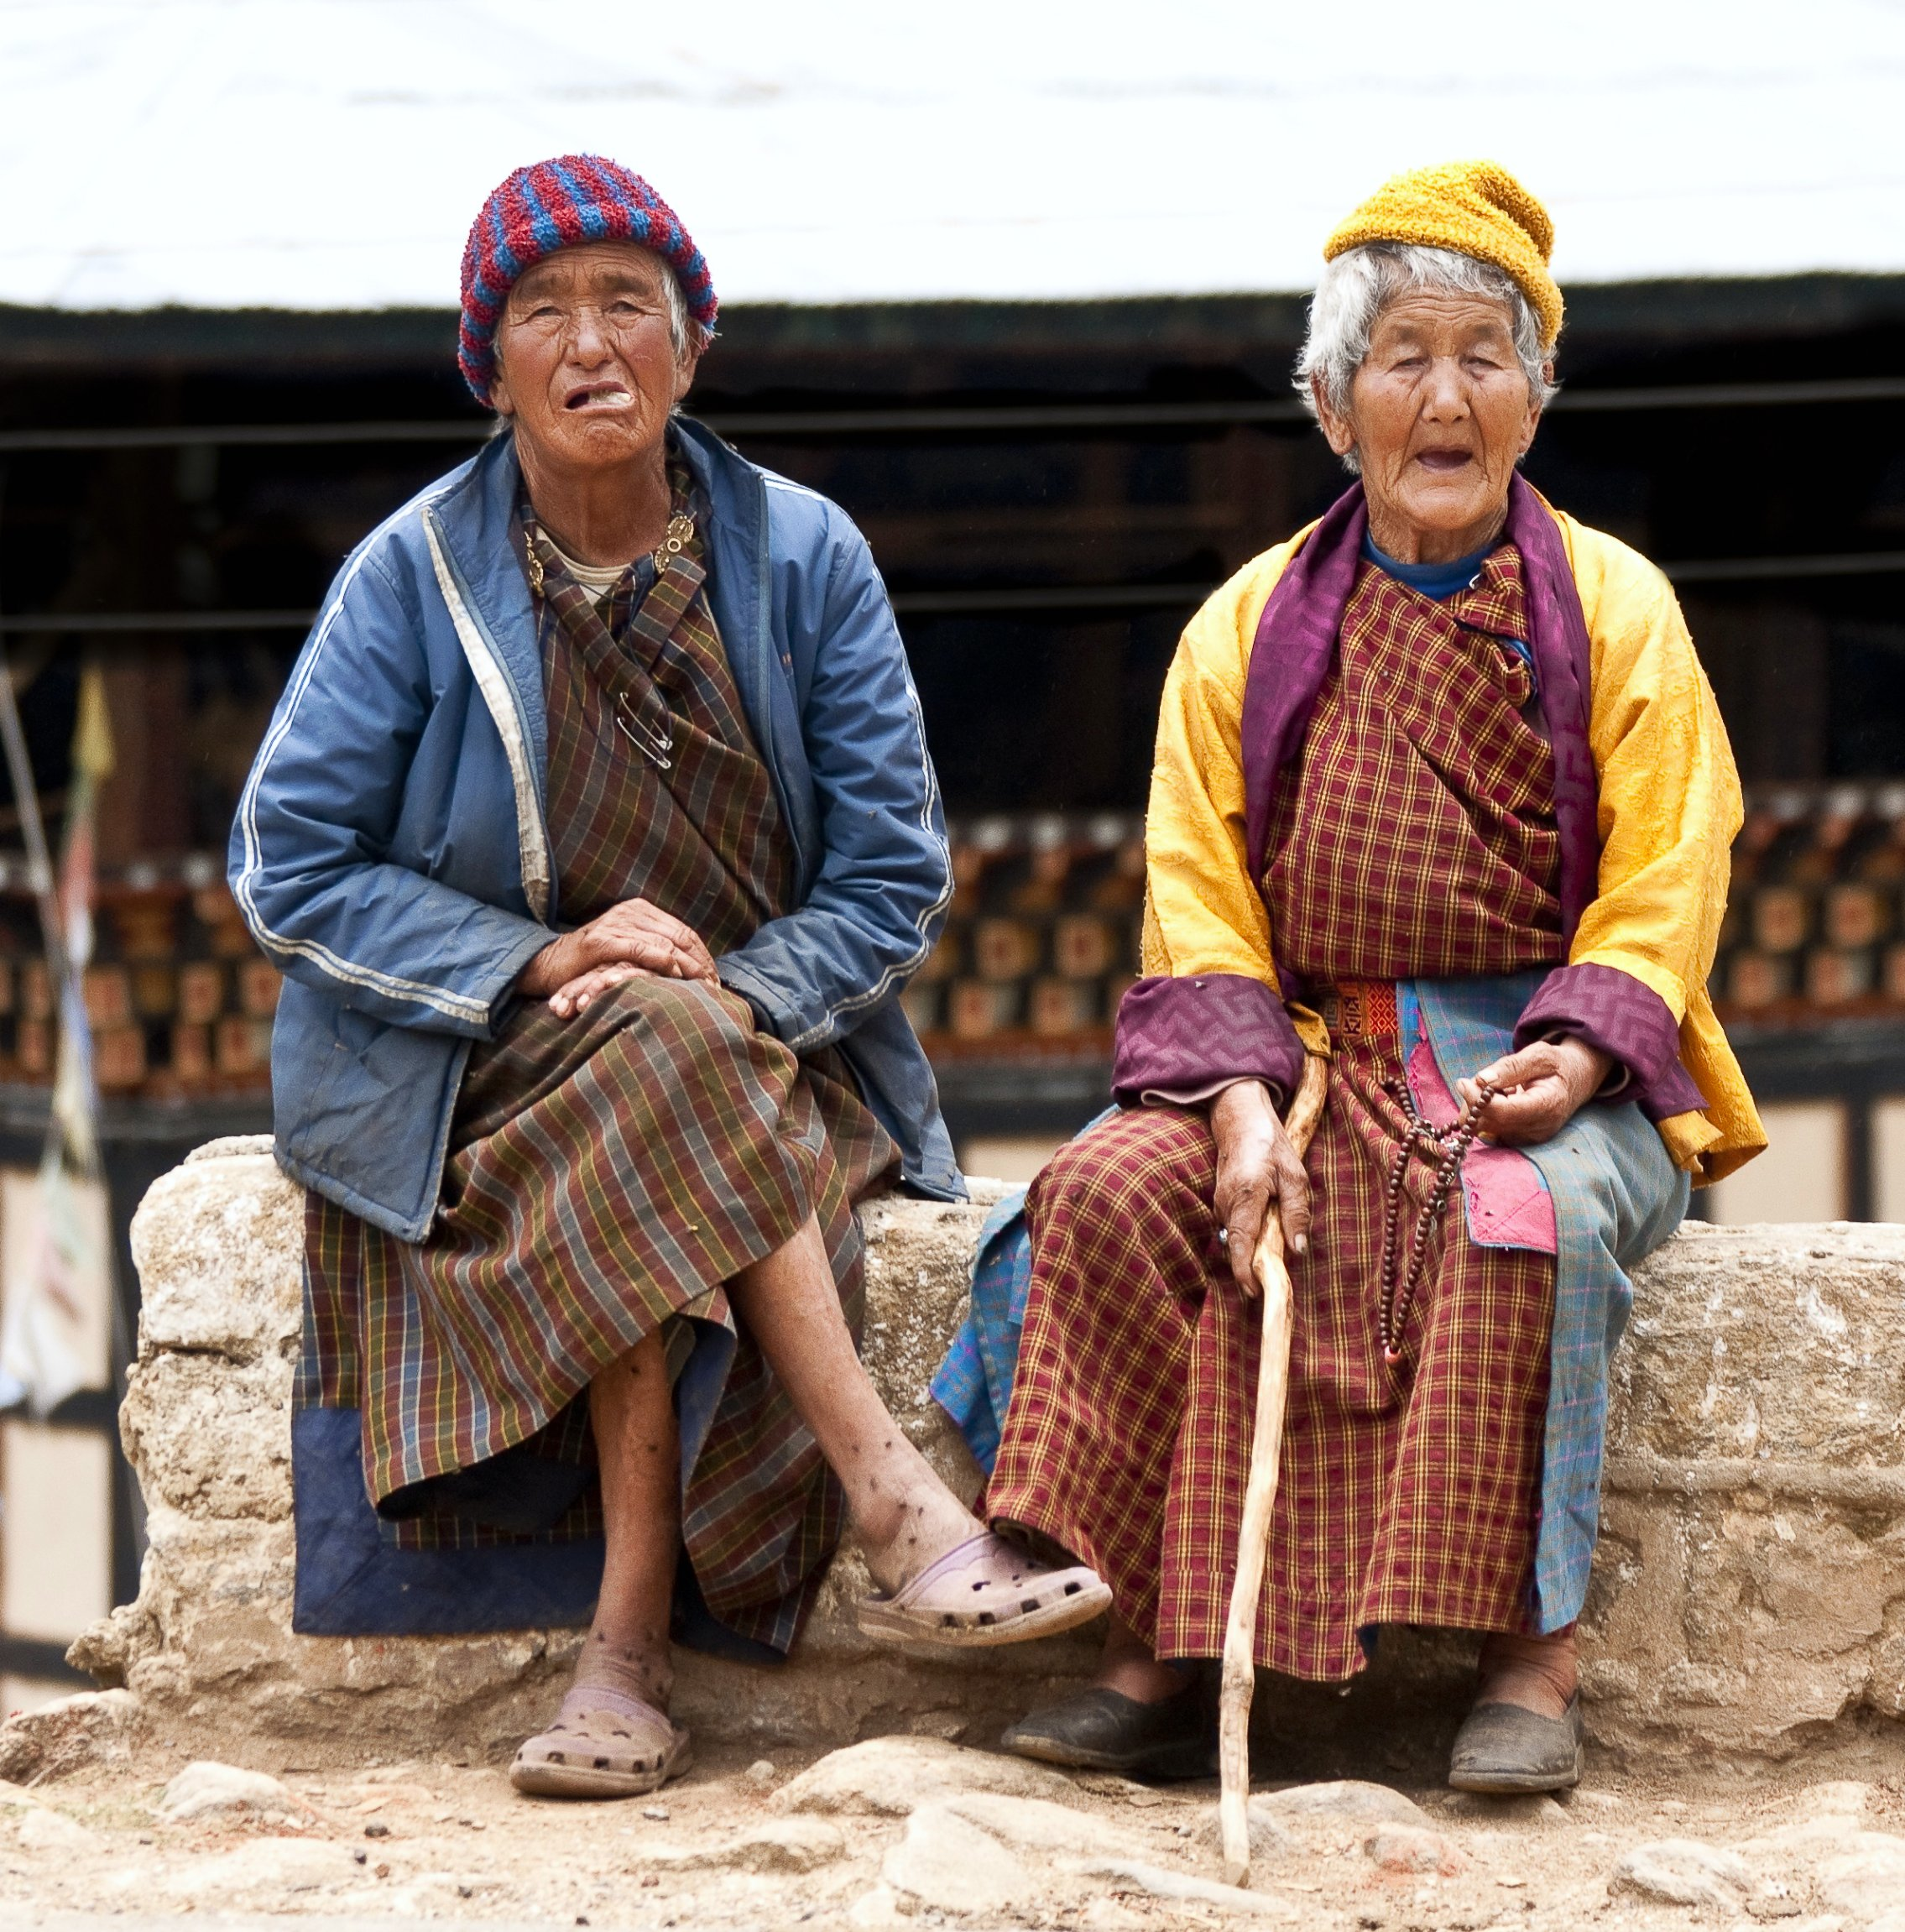 Elderly Bhutanese women (Bhutan)